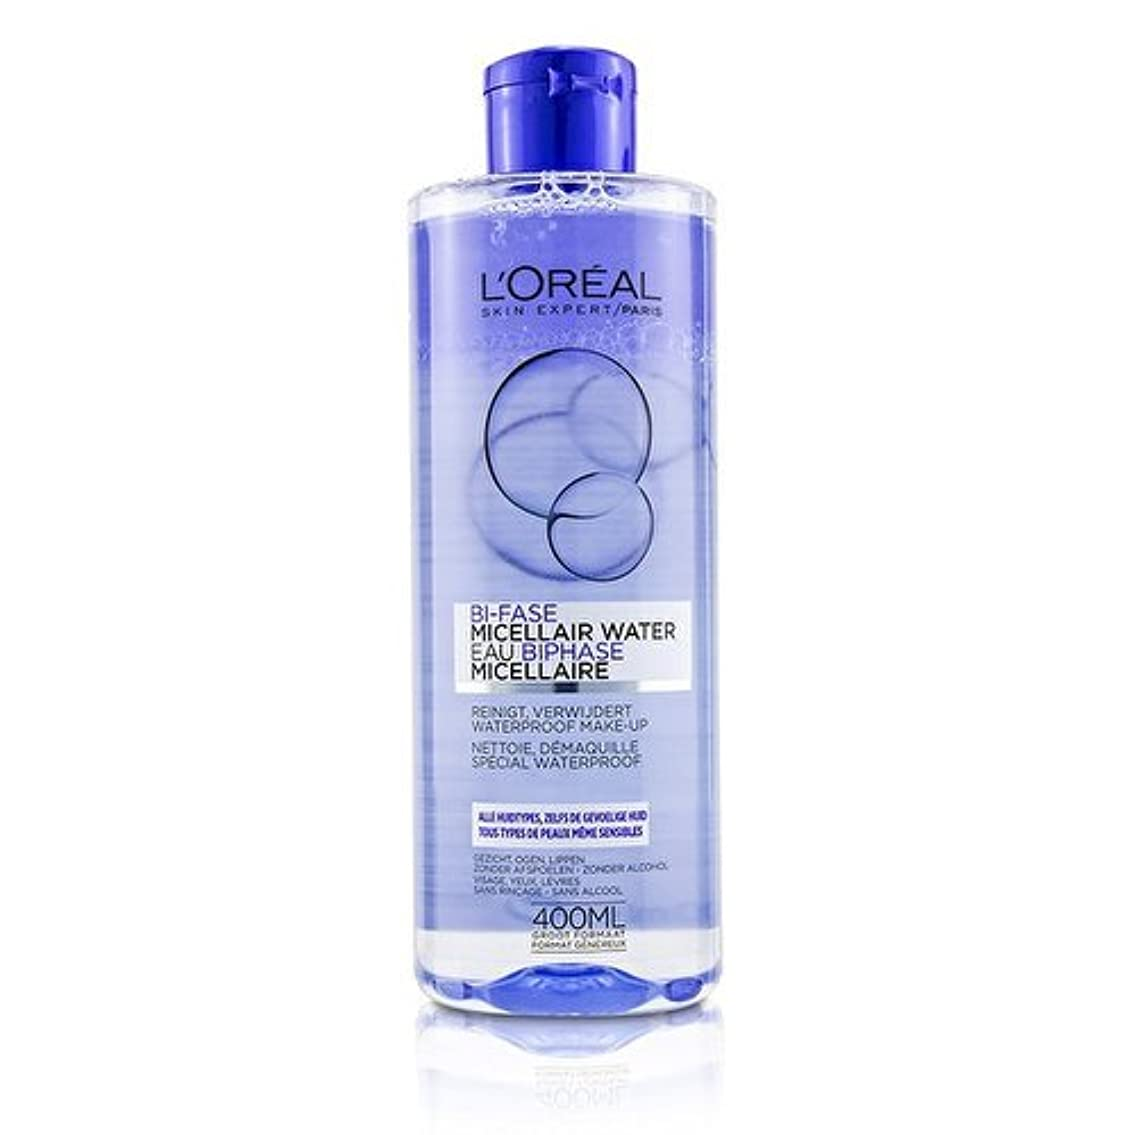 害マイクロヒューバートハドソンロレアル Bi-Phase Micellar Water (Bi-Fase Micellair Water) - For All Skin Types, even Sensitive Skin 400ml/13.3oz並行輸入品